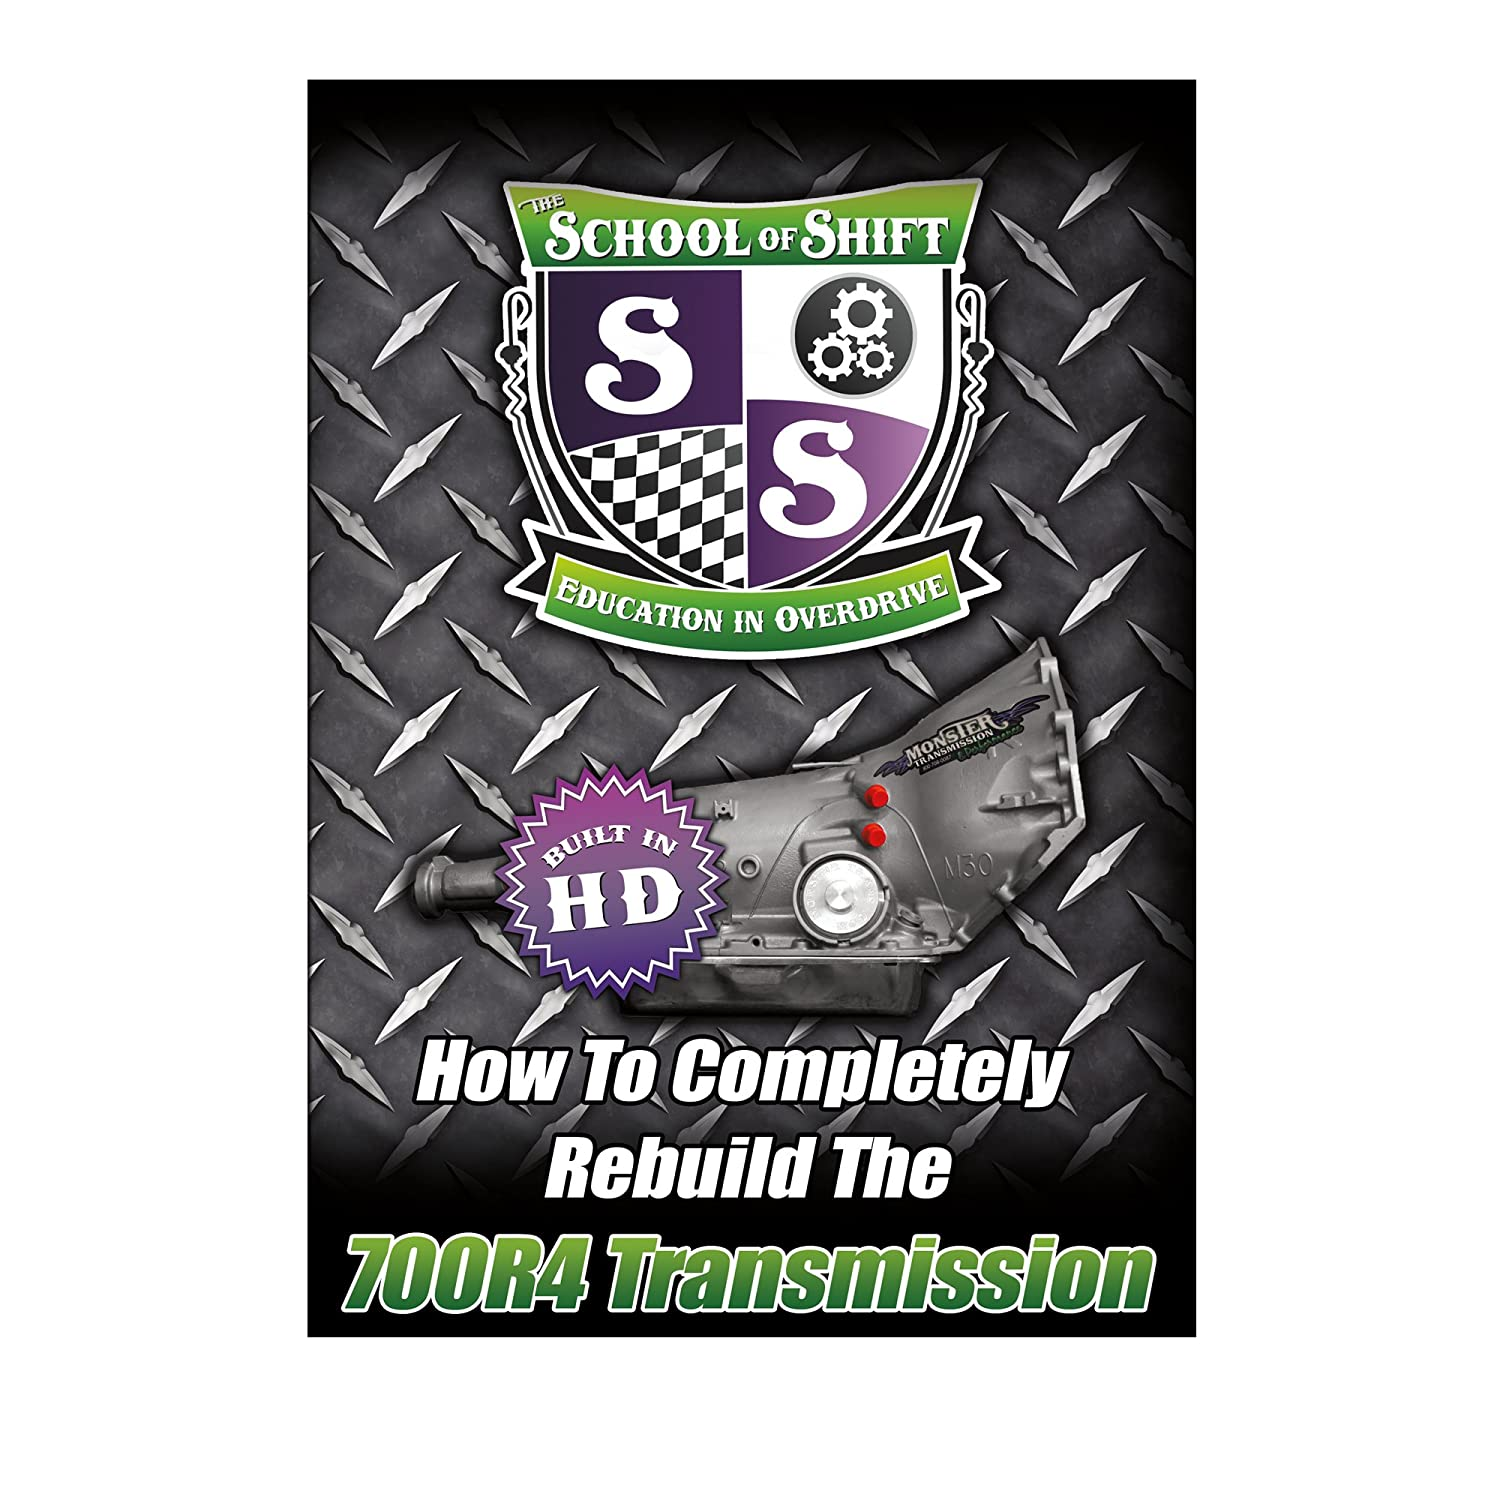 Amazon.com: Complete 700R4 Transmission Rebuild DVD - How to Completely  Rebuild the 700R4 Step by Step From Start to Finish: Automotive